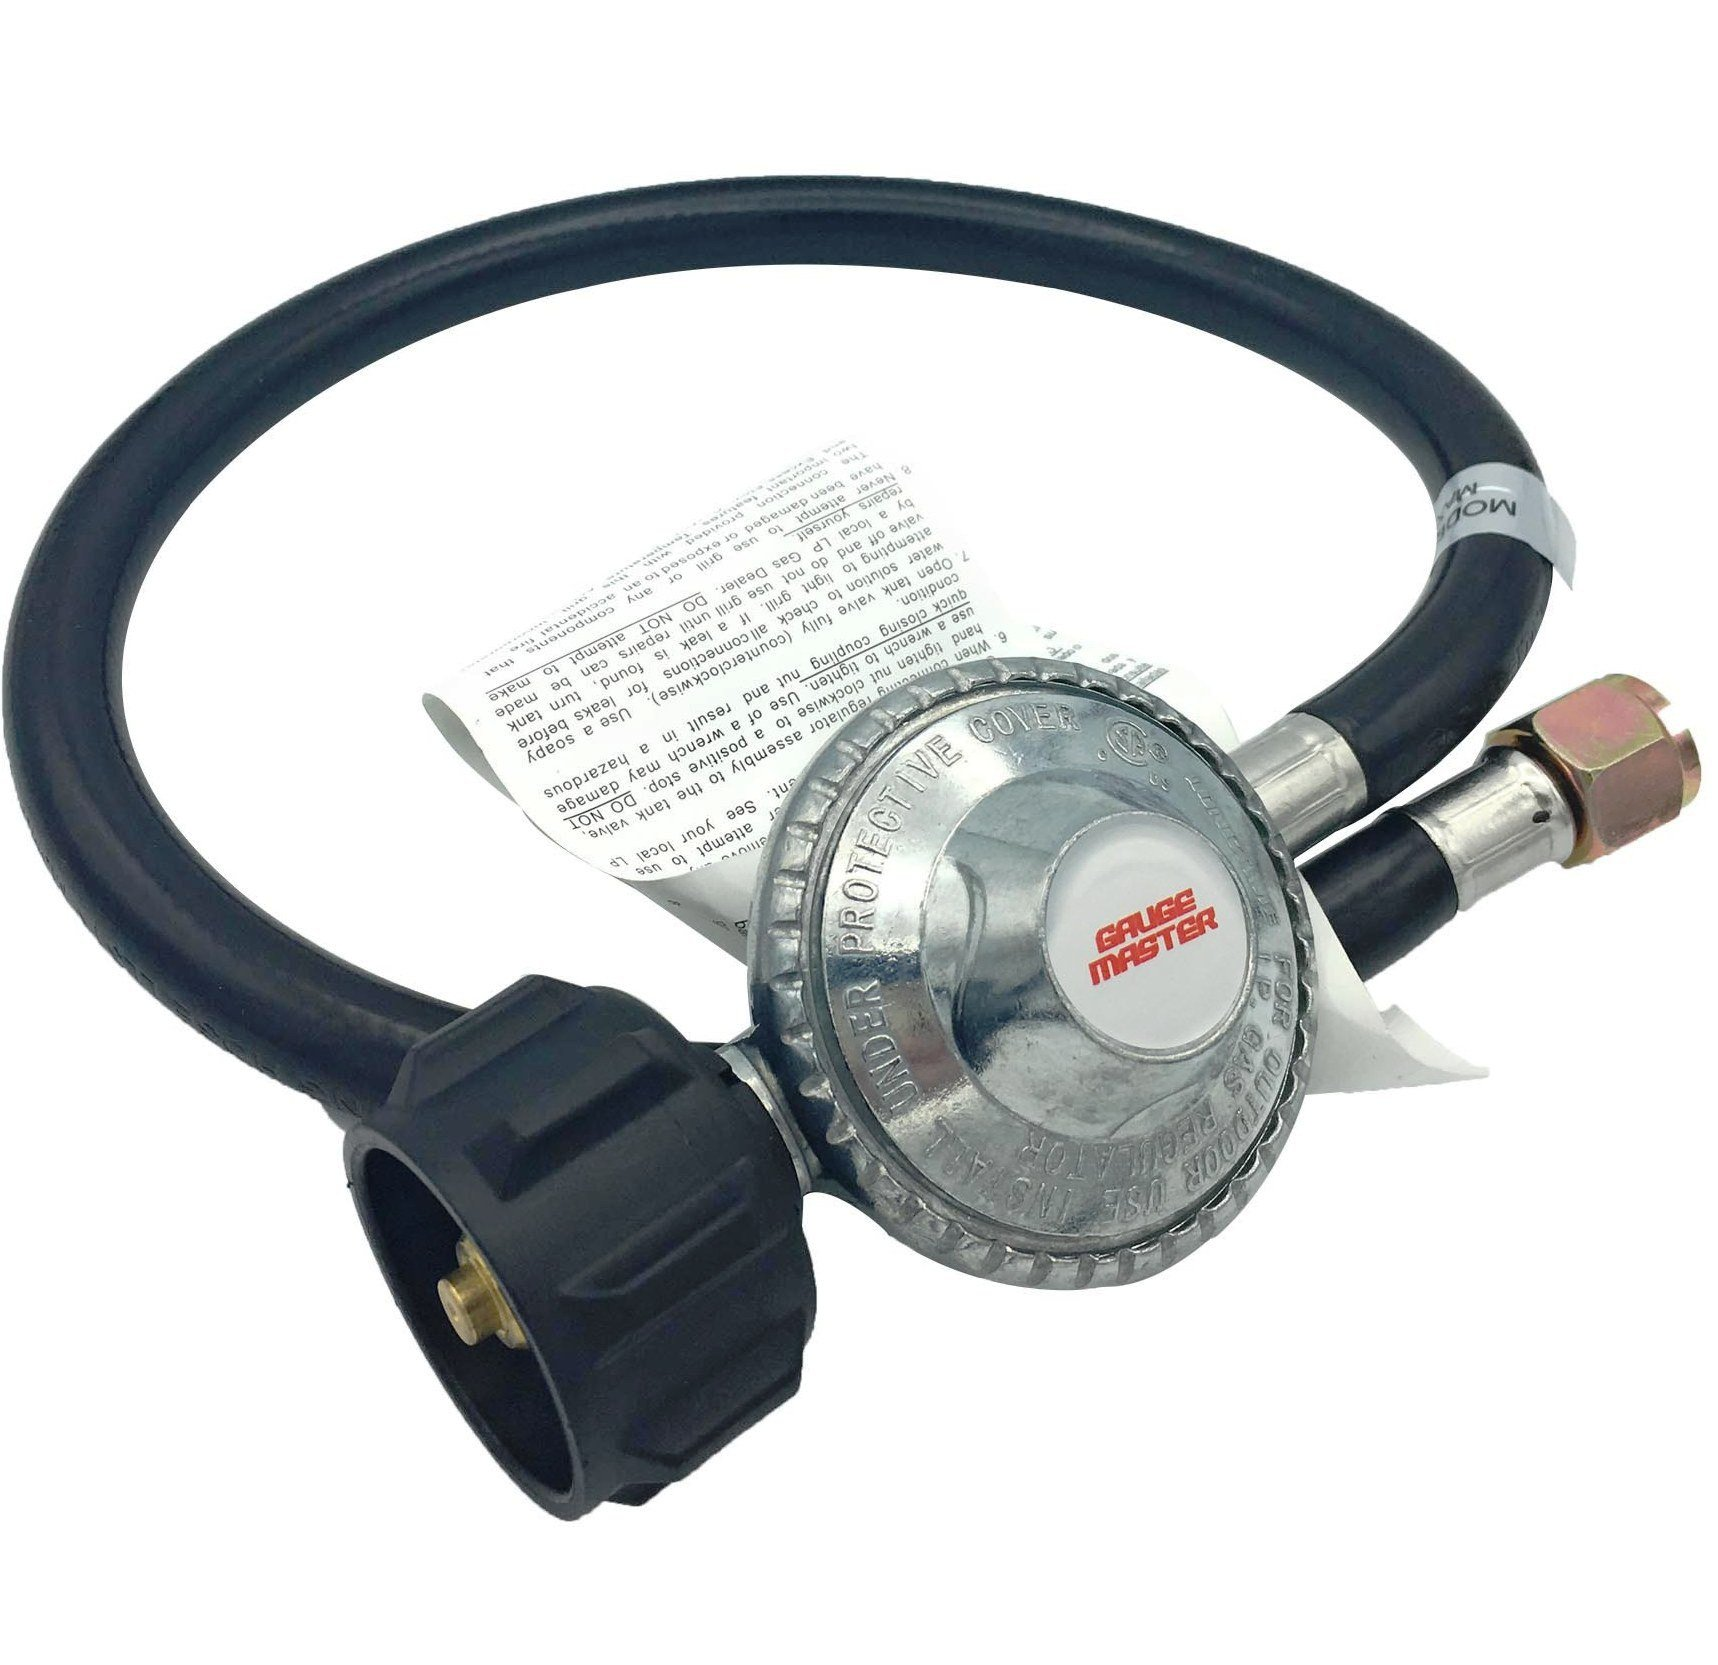 """Gauge Master Premium 2 Foot Universal QCC1 Low Pressure LP Propane Regulator - BBQ Grill Replacement hose fits Most LP Gas Grills, Heaters and Fire Pit Table - 3/8"""" Female Flare Nut (2 Feet)"""